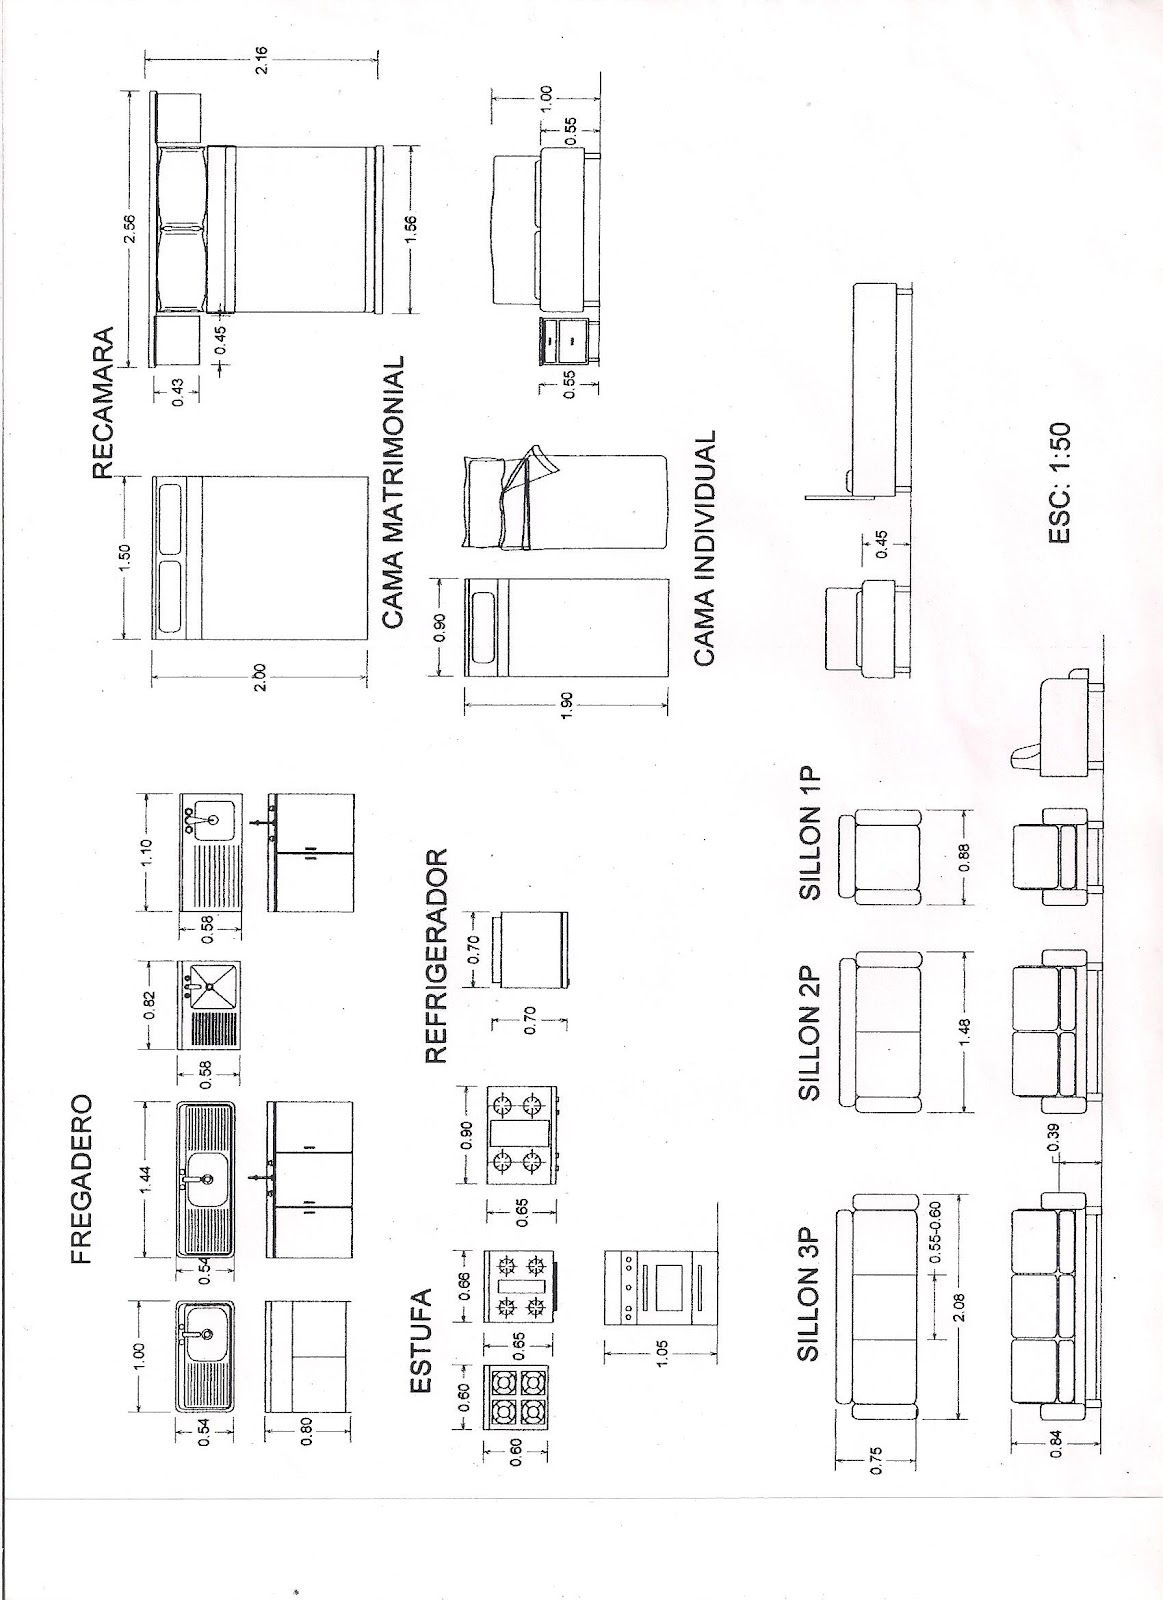 Dimensiones De Mobiliario De Cocina Indicate Glass Wall On A Floor Plan